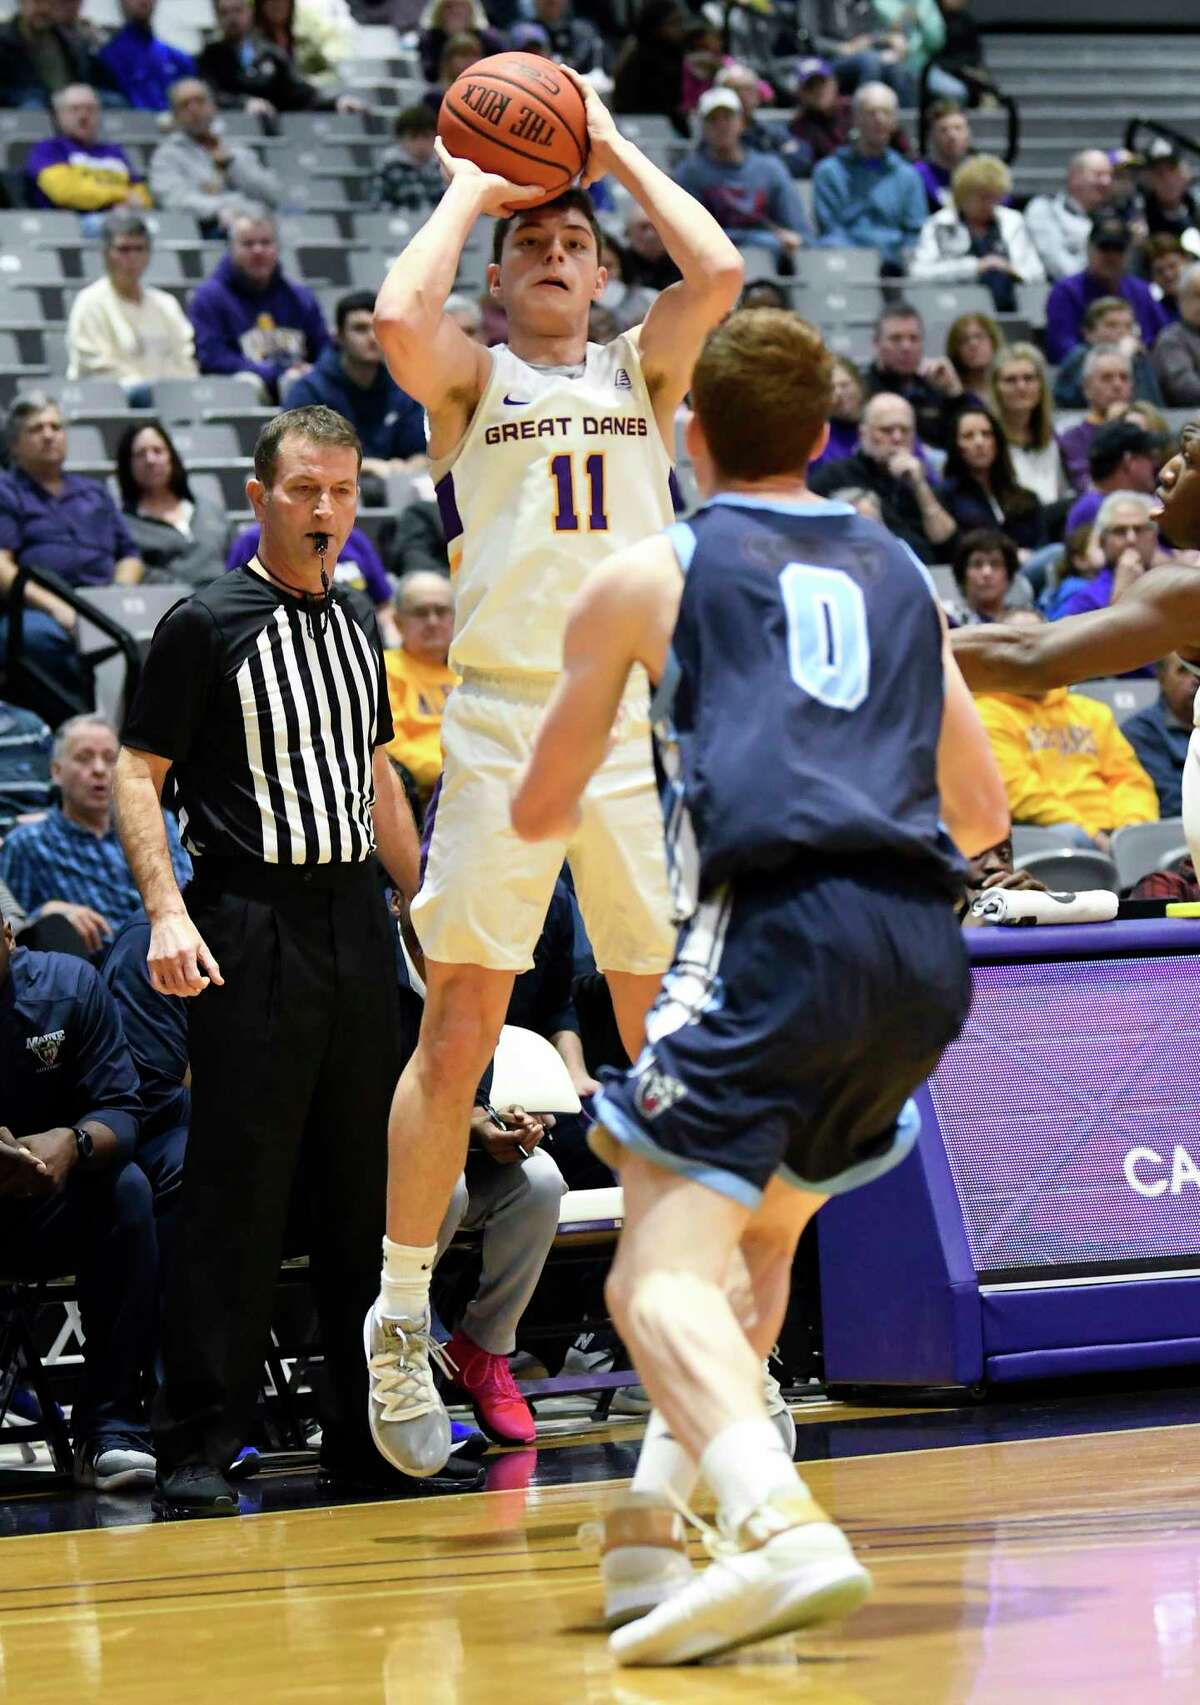 University at Albany guard Cameron Healy (11) scores against Maine forward Andrew Fleming (0) during the first half of an NCAA basketball game Saturday Jan. 11, 2020, in Albany, N.Y. (Hans Pennink / Special to the Times Union)